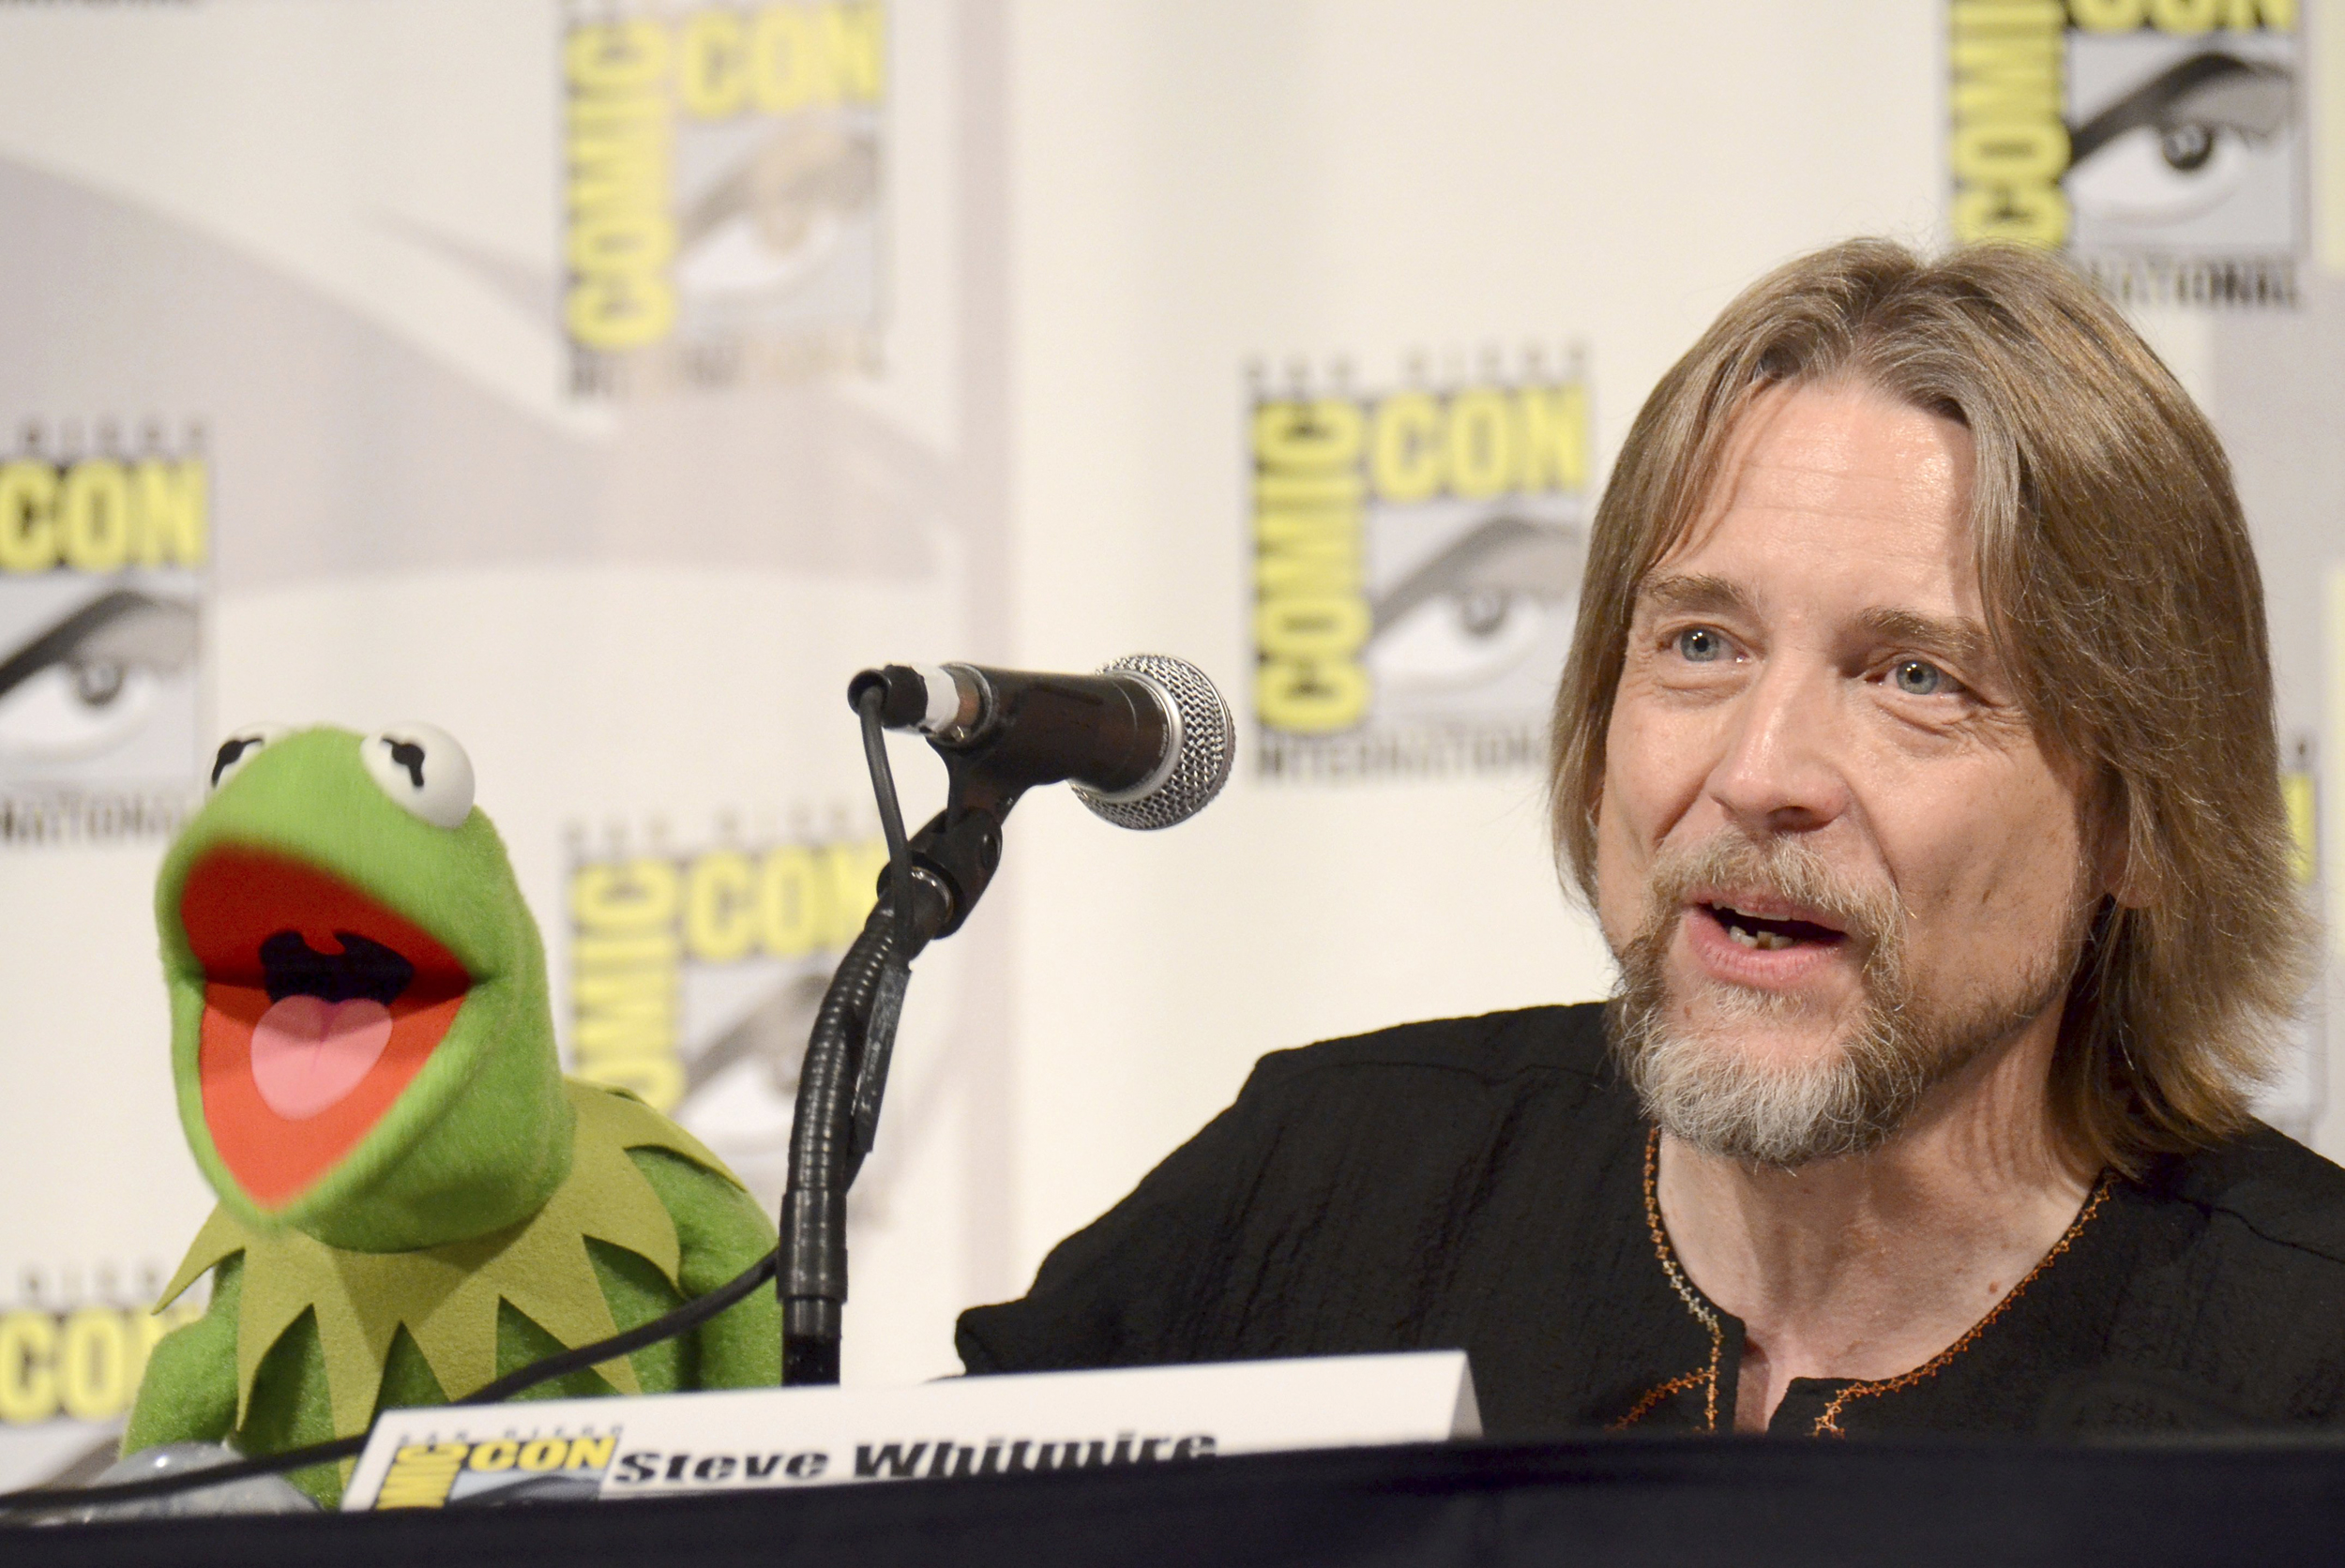 Puppeteer Turned Kermit Into 'Bitter Victim,' Henson's Daughter Says